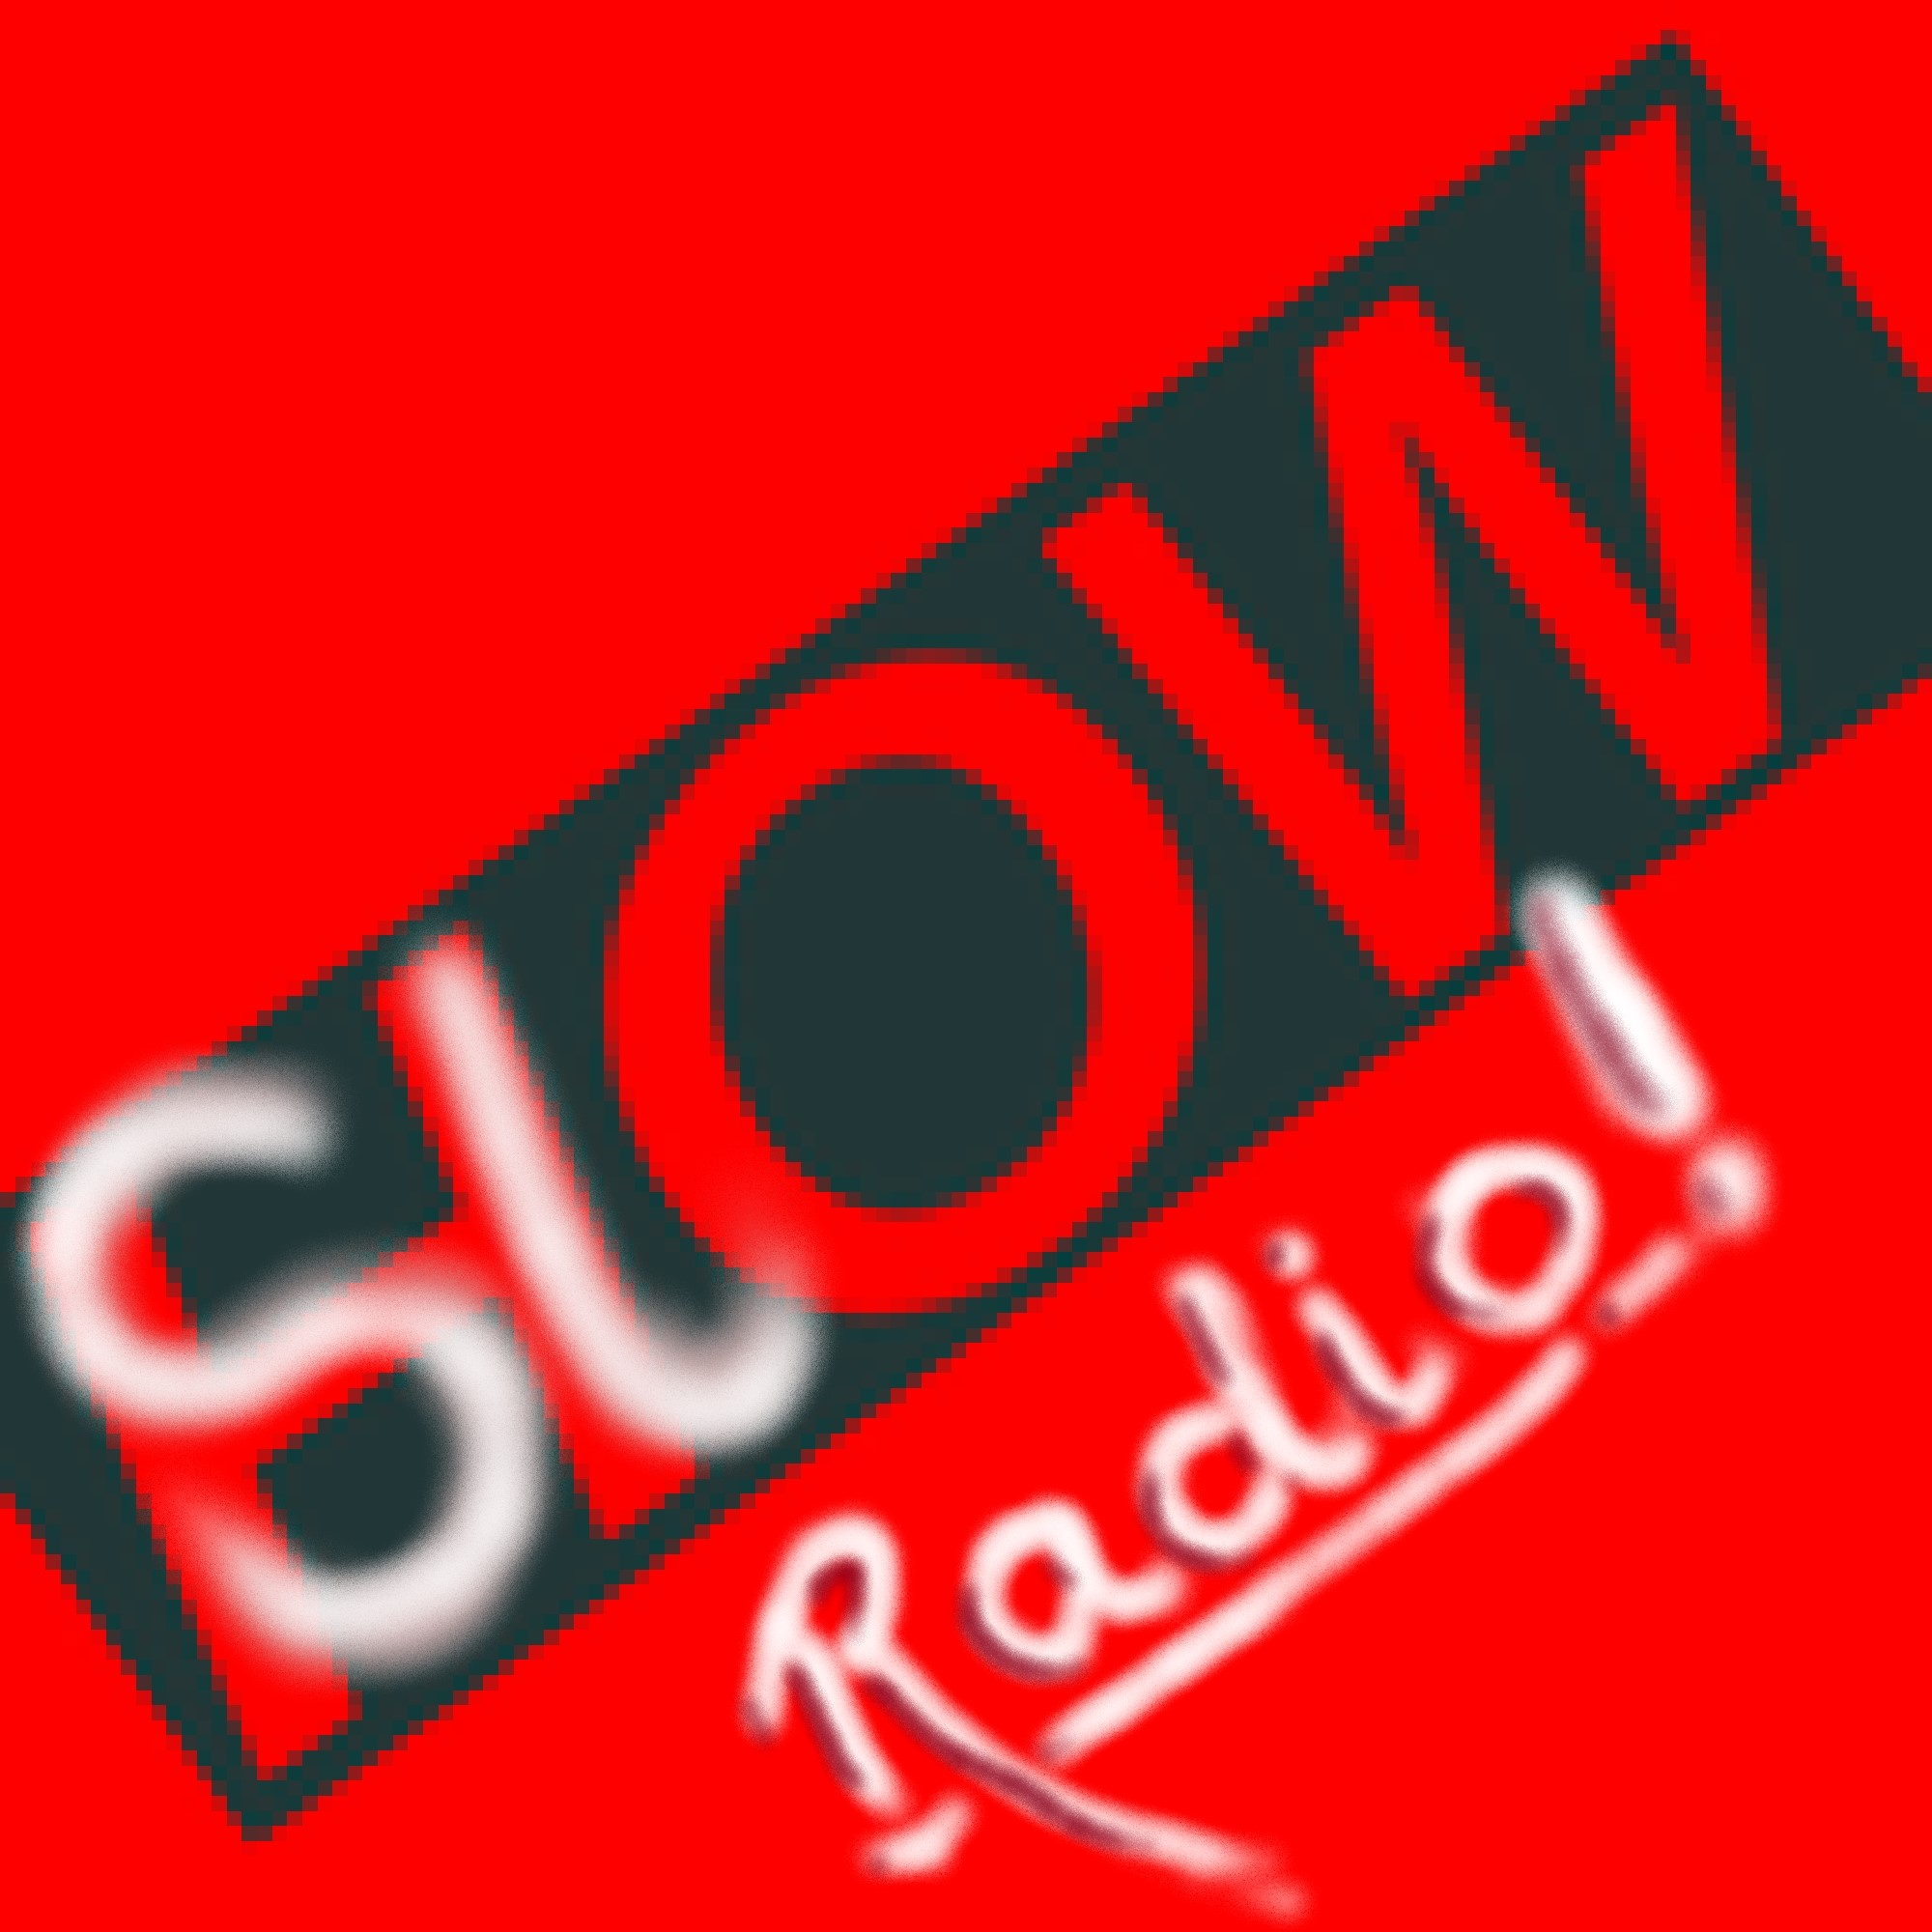 A highlight from Slow Radio : Will We? - full performance